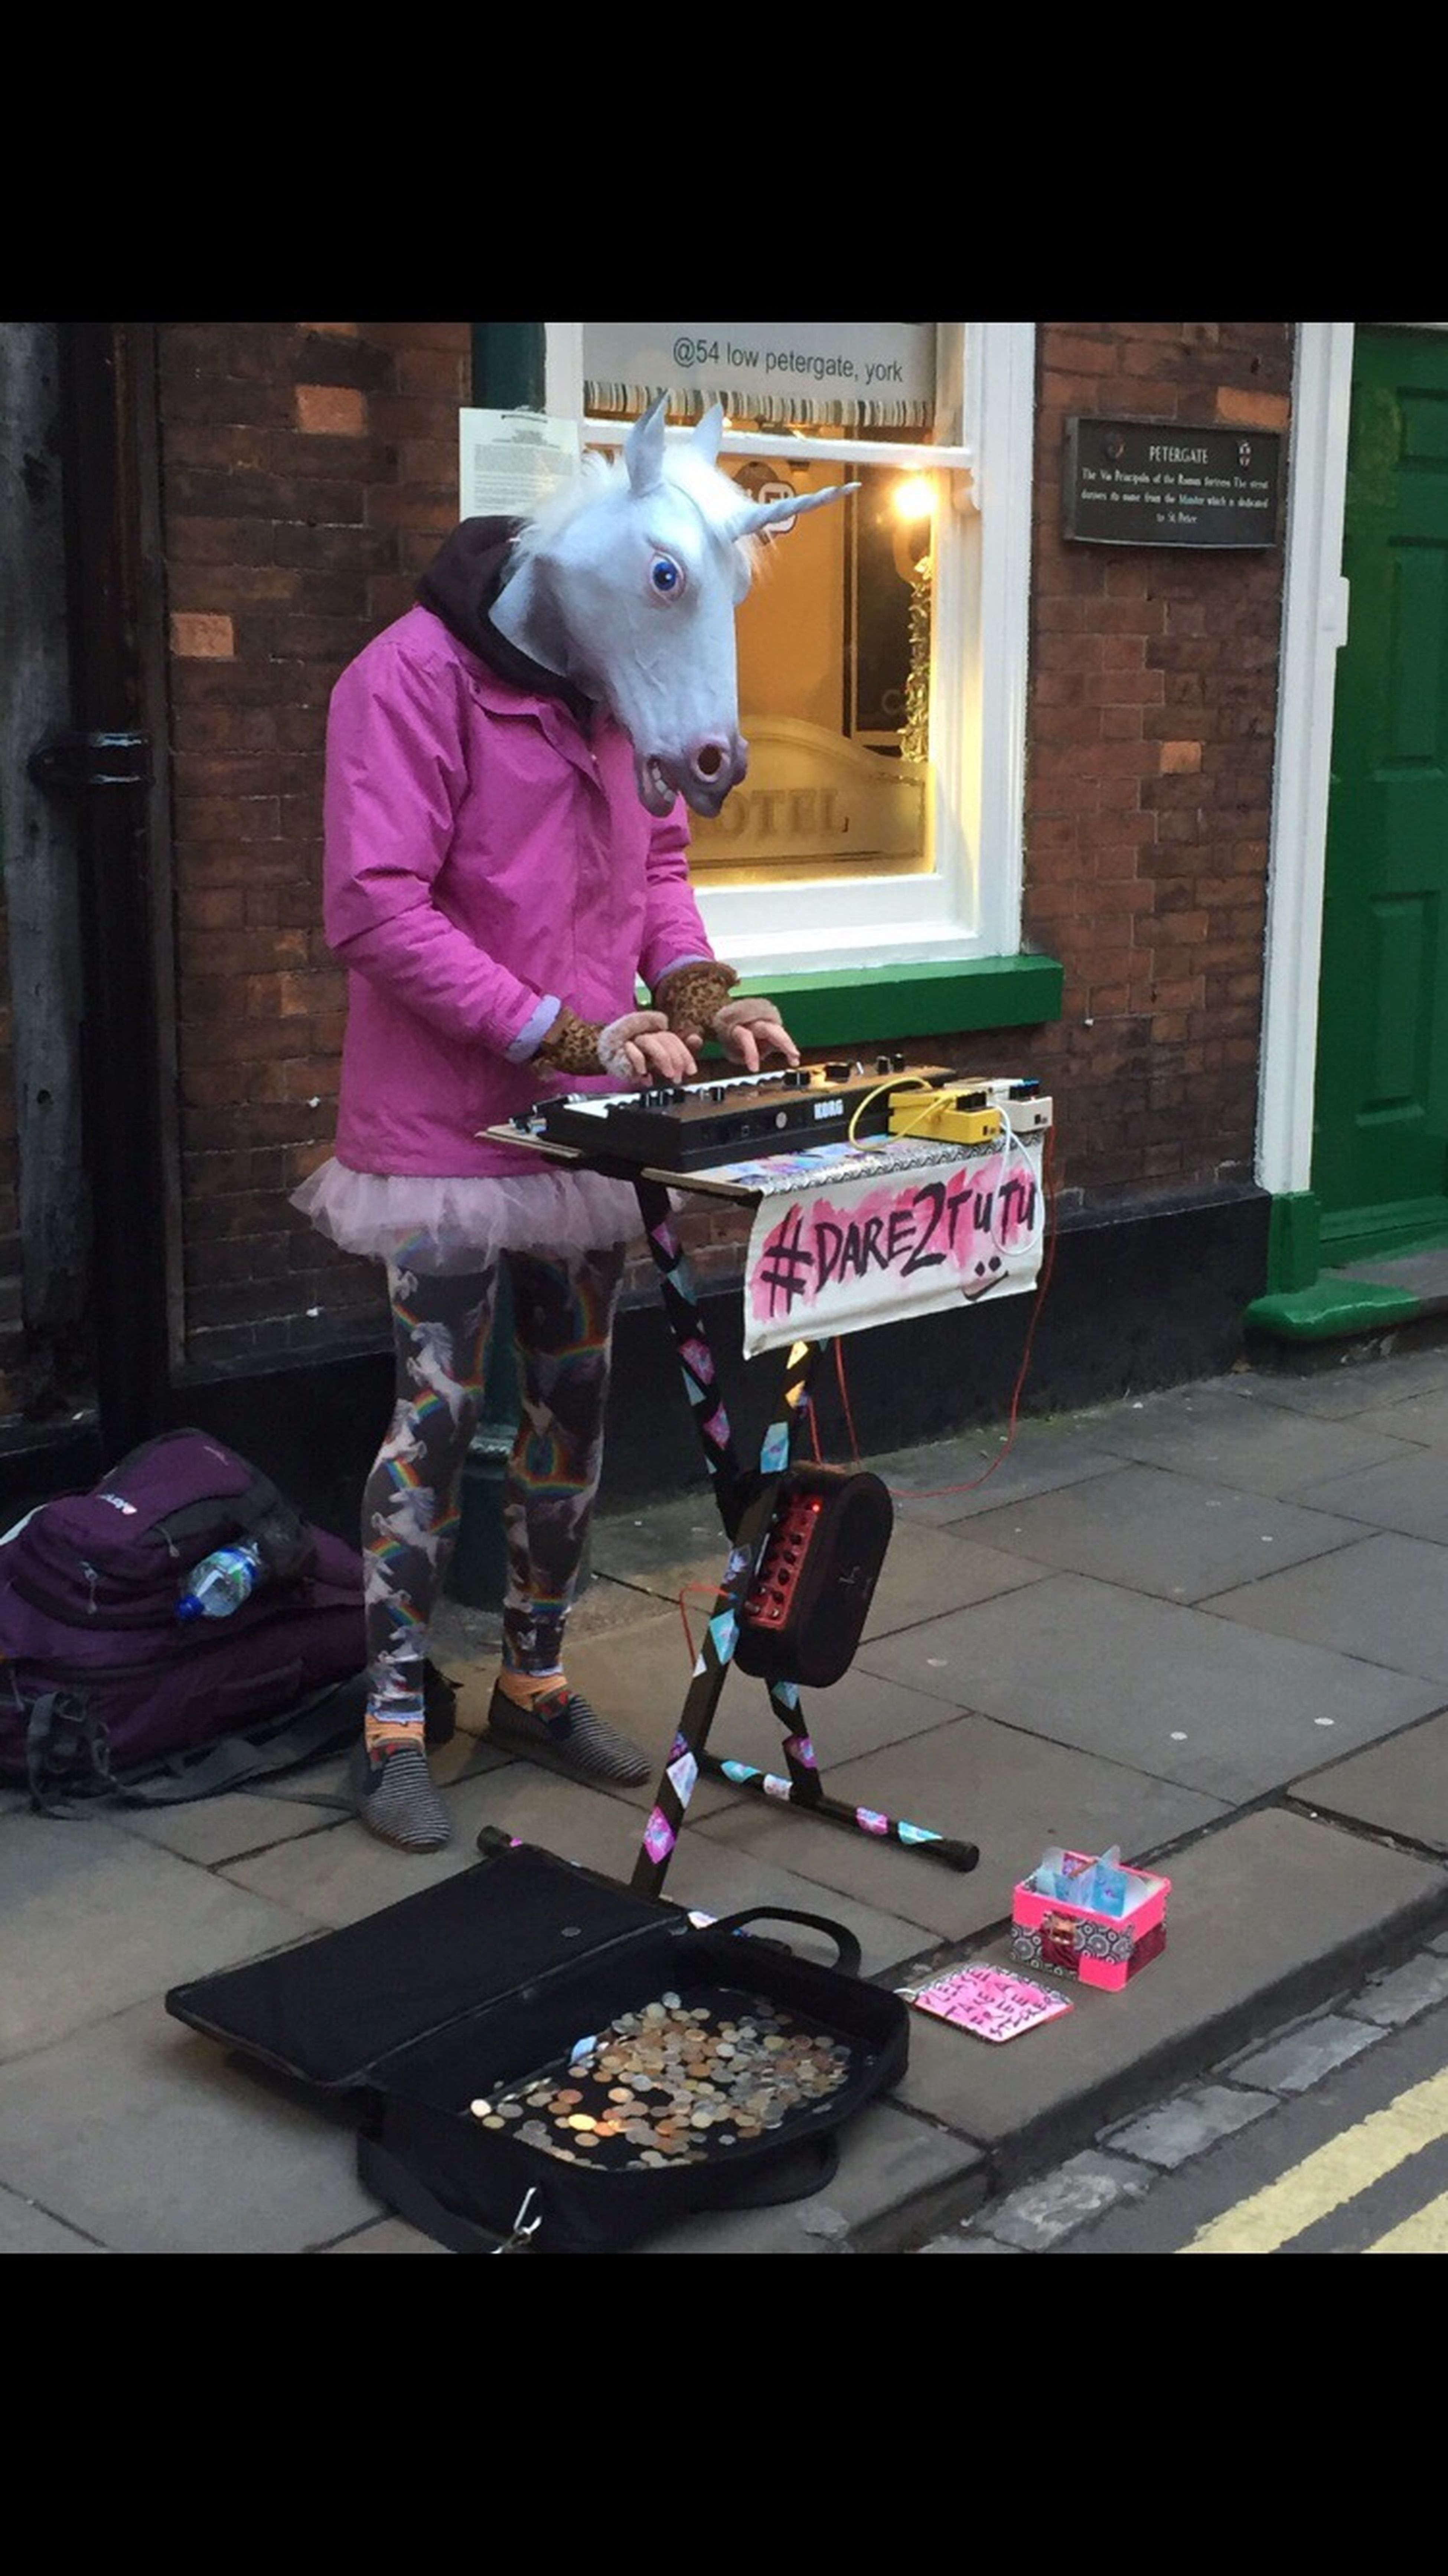 Music York Streetphotography Photooftheday Photography Funny Dressing Up Musician Busker Donation Sing For Pennies